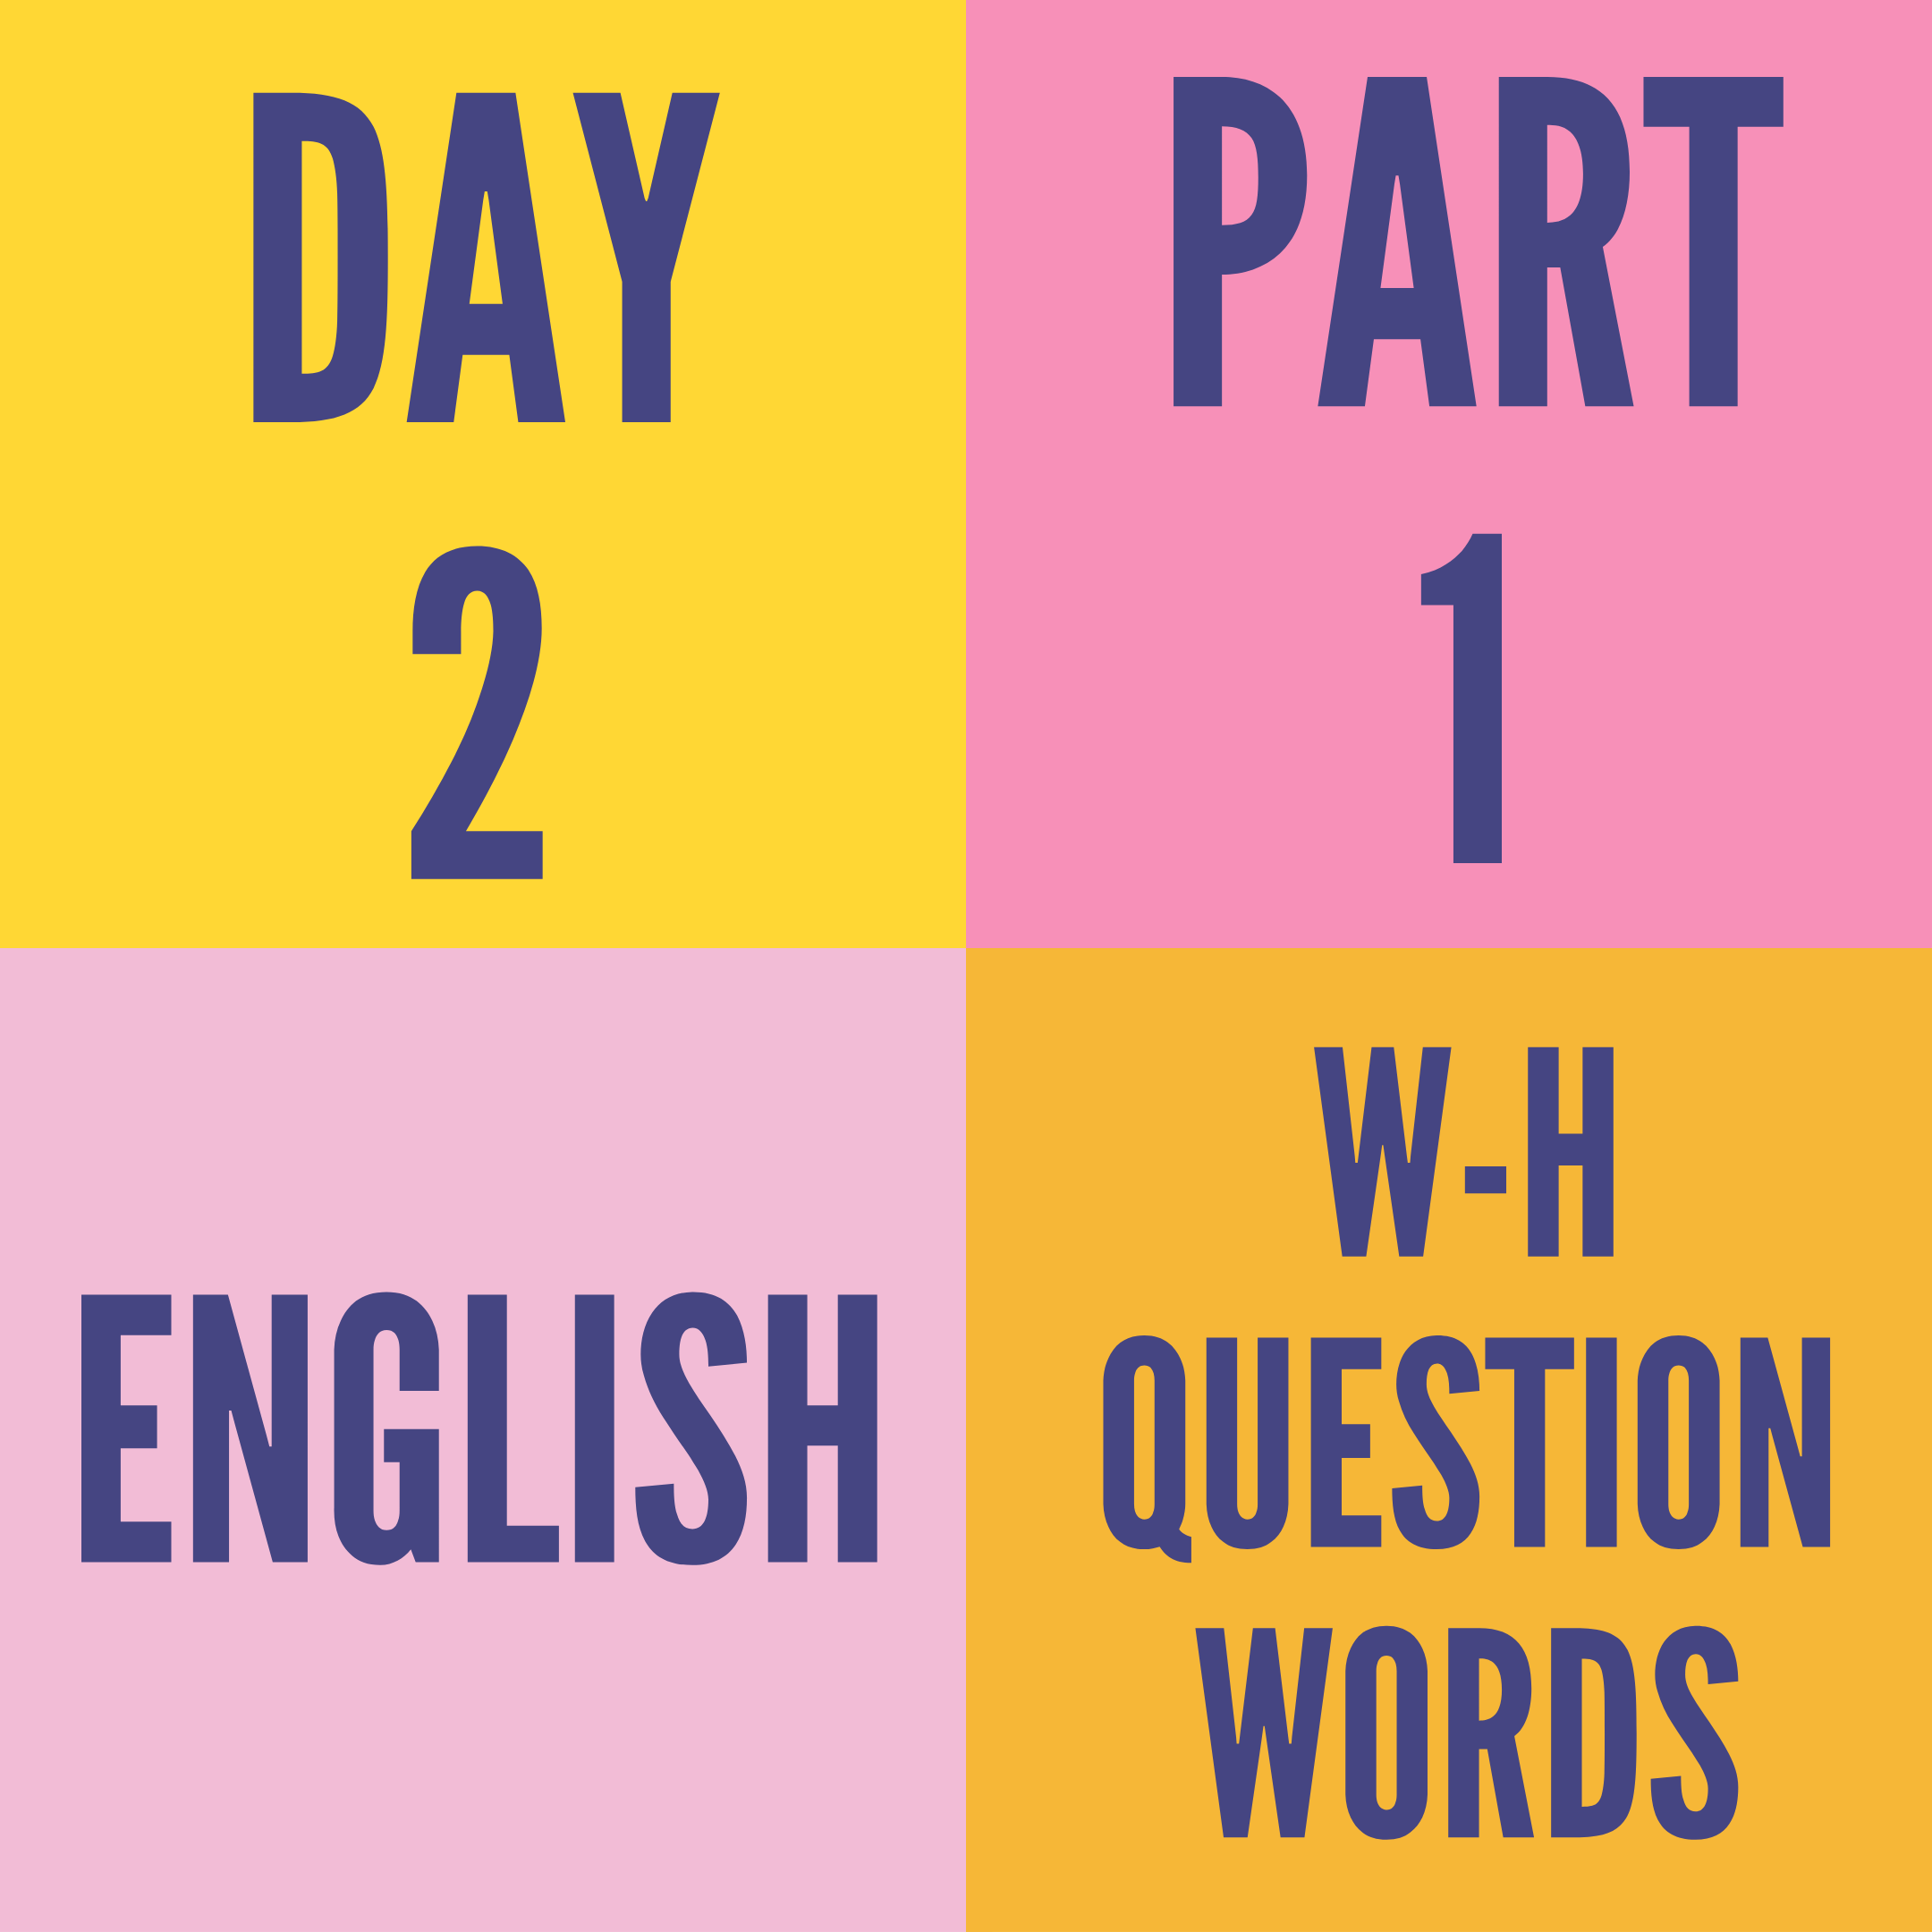 DAY-2 PART-1 W-H QUESTION WORDS